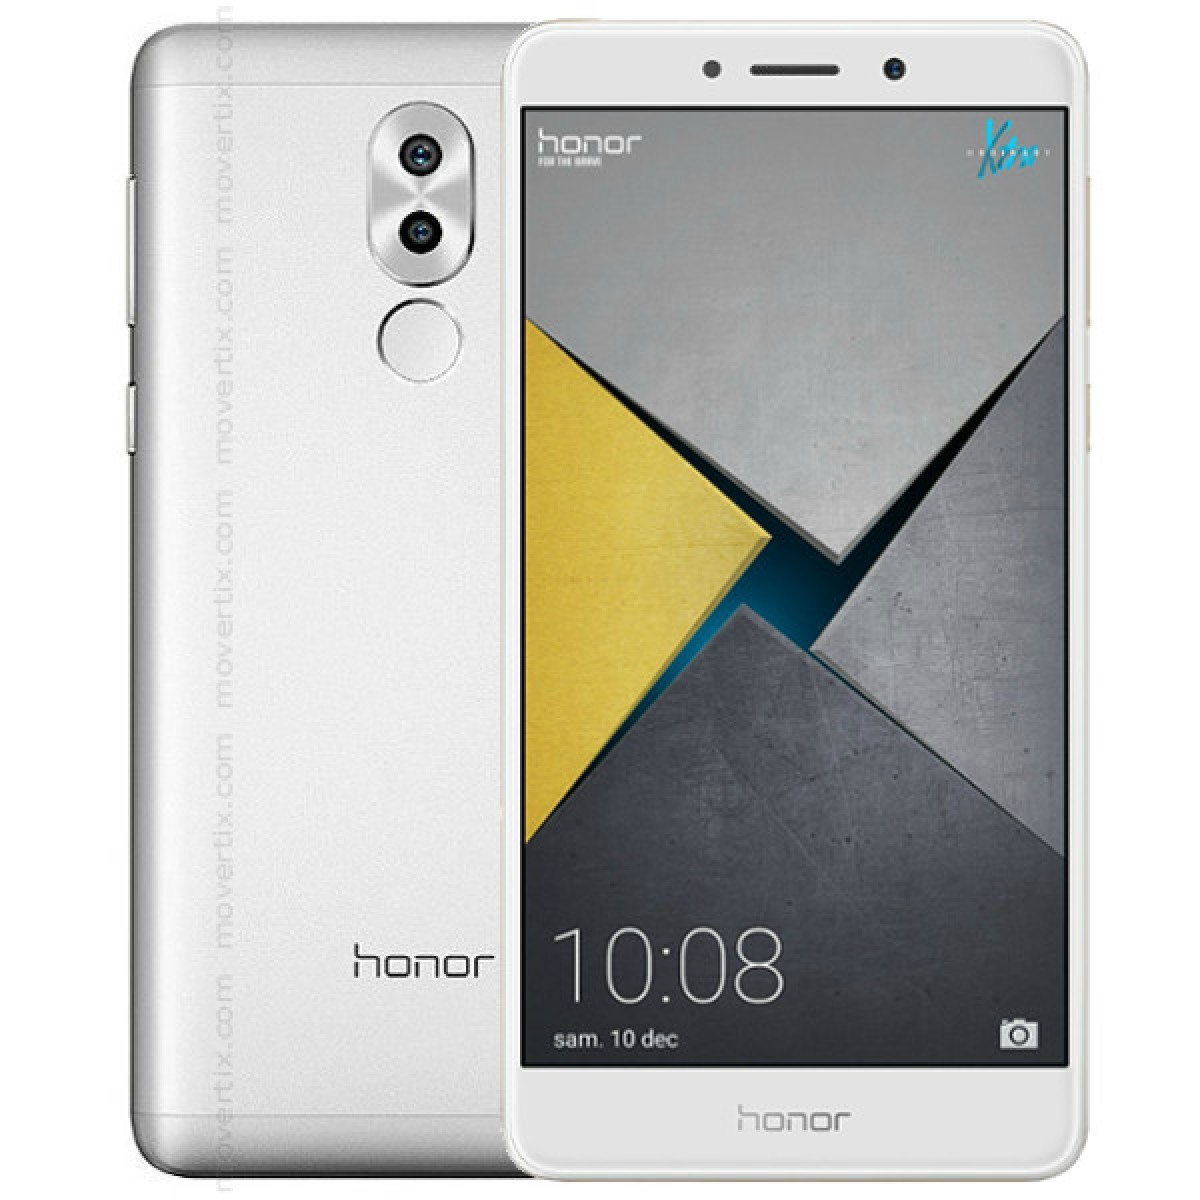 Honor 6X Premium Silver 64GB and 4GB RAM